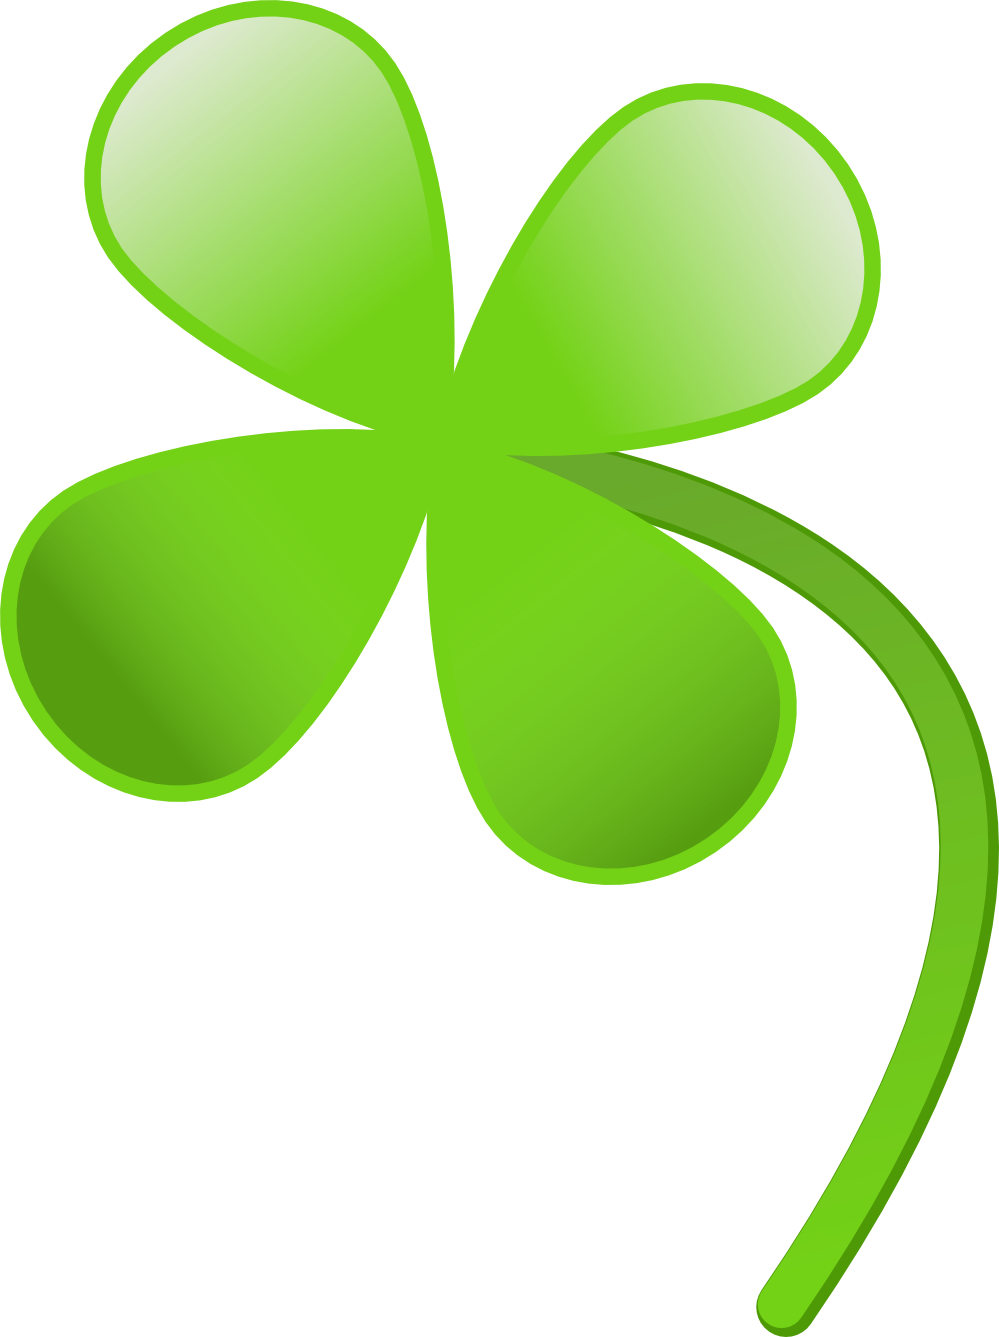 Luck clipart green. Pin by next on